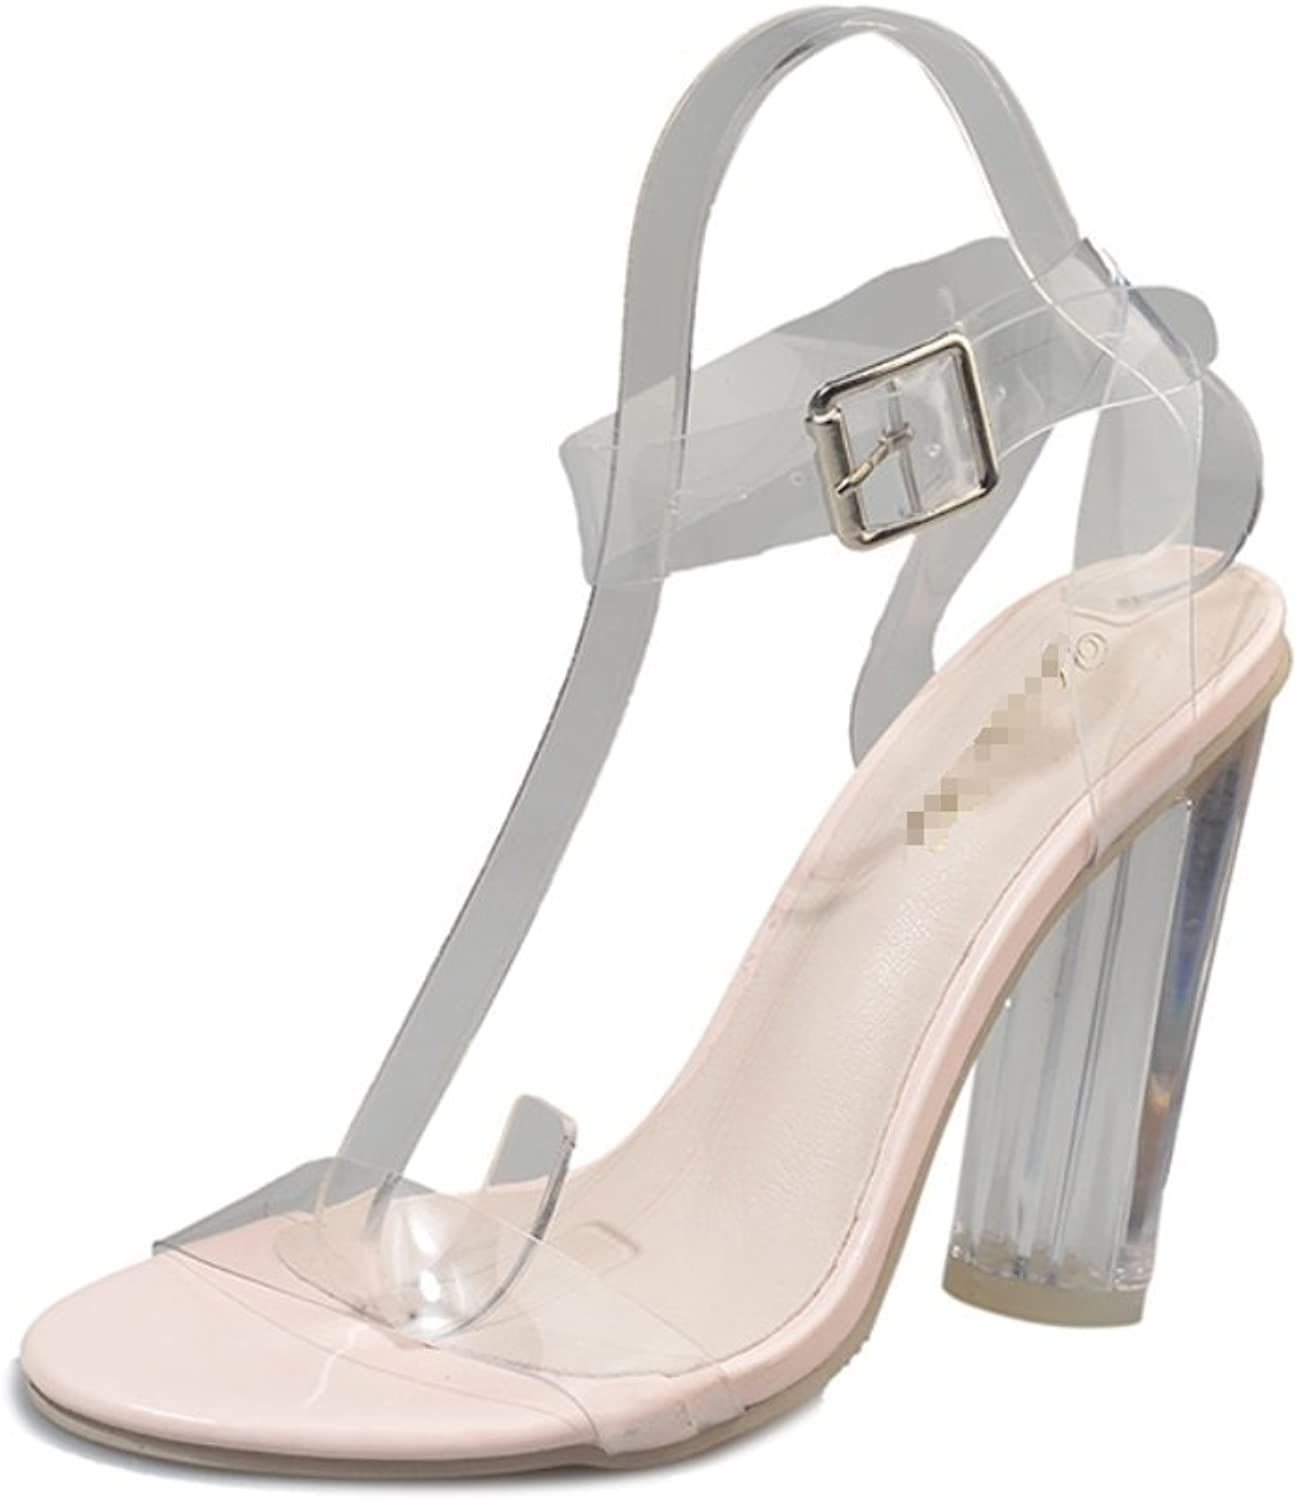 Women's Thick Heels-Sexy one Word with Toe Sandals-Pure Crystal shoes Transparent Pierced shoes Formal, Wedding, Party Comfort Classic Series Zhhzz